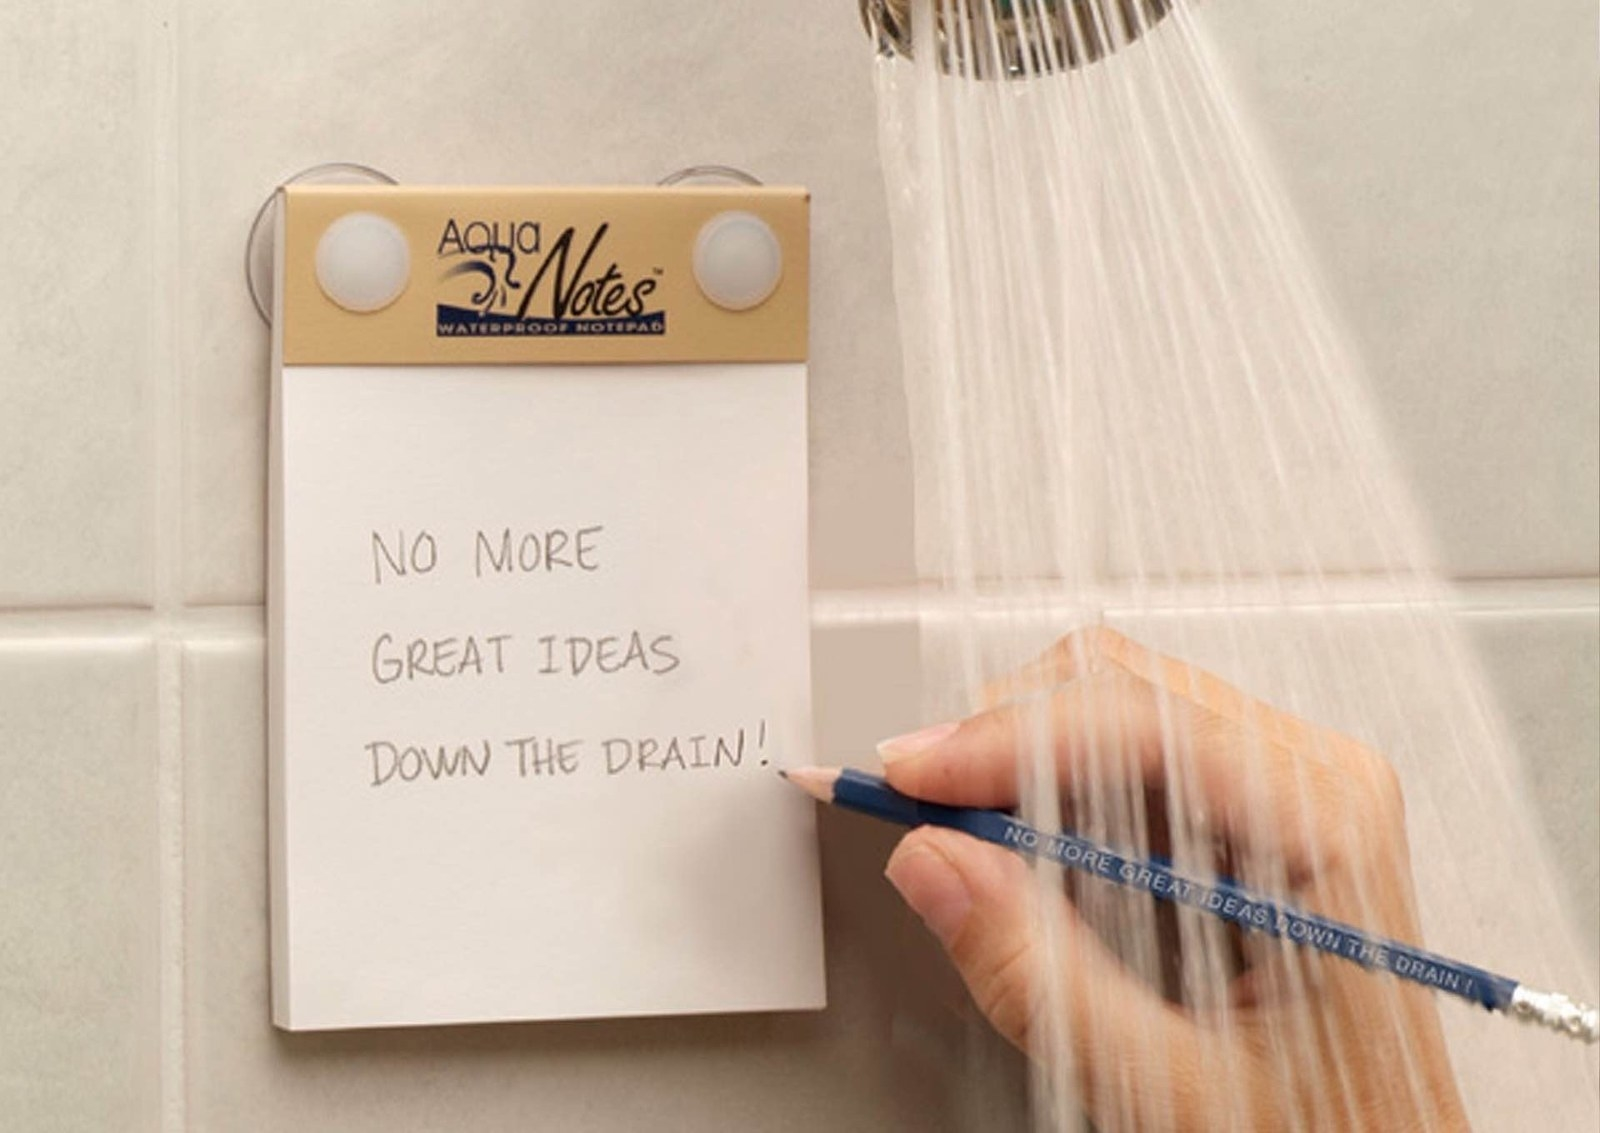 "A water-proof note pad suctioned onto a shower wall as a person writes ""no more great ideas down the drain!"" on it"